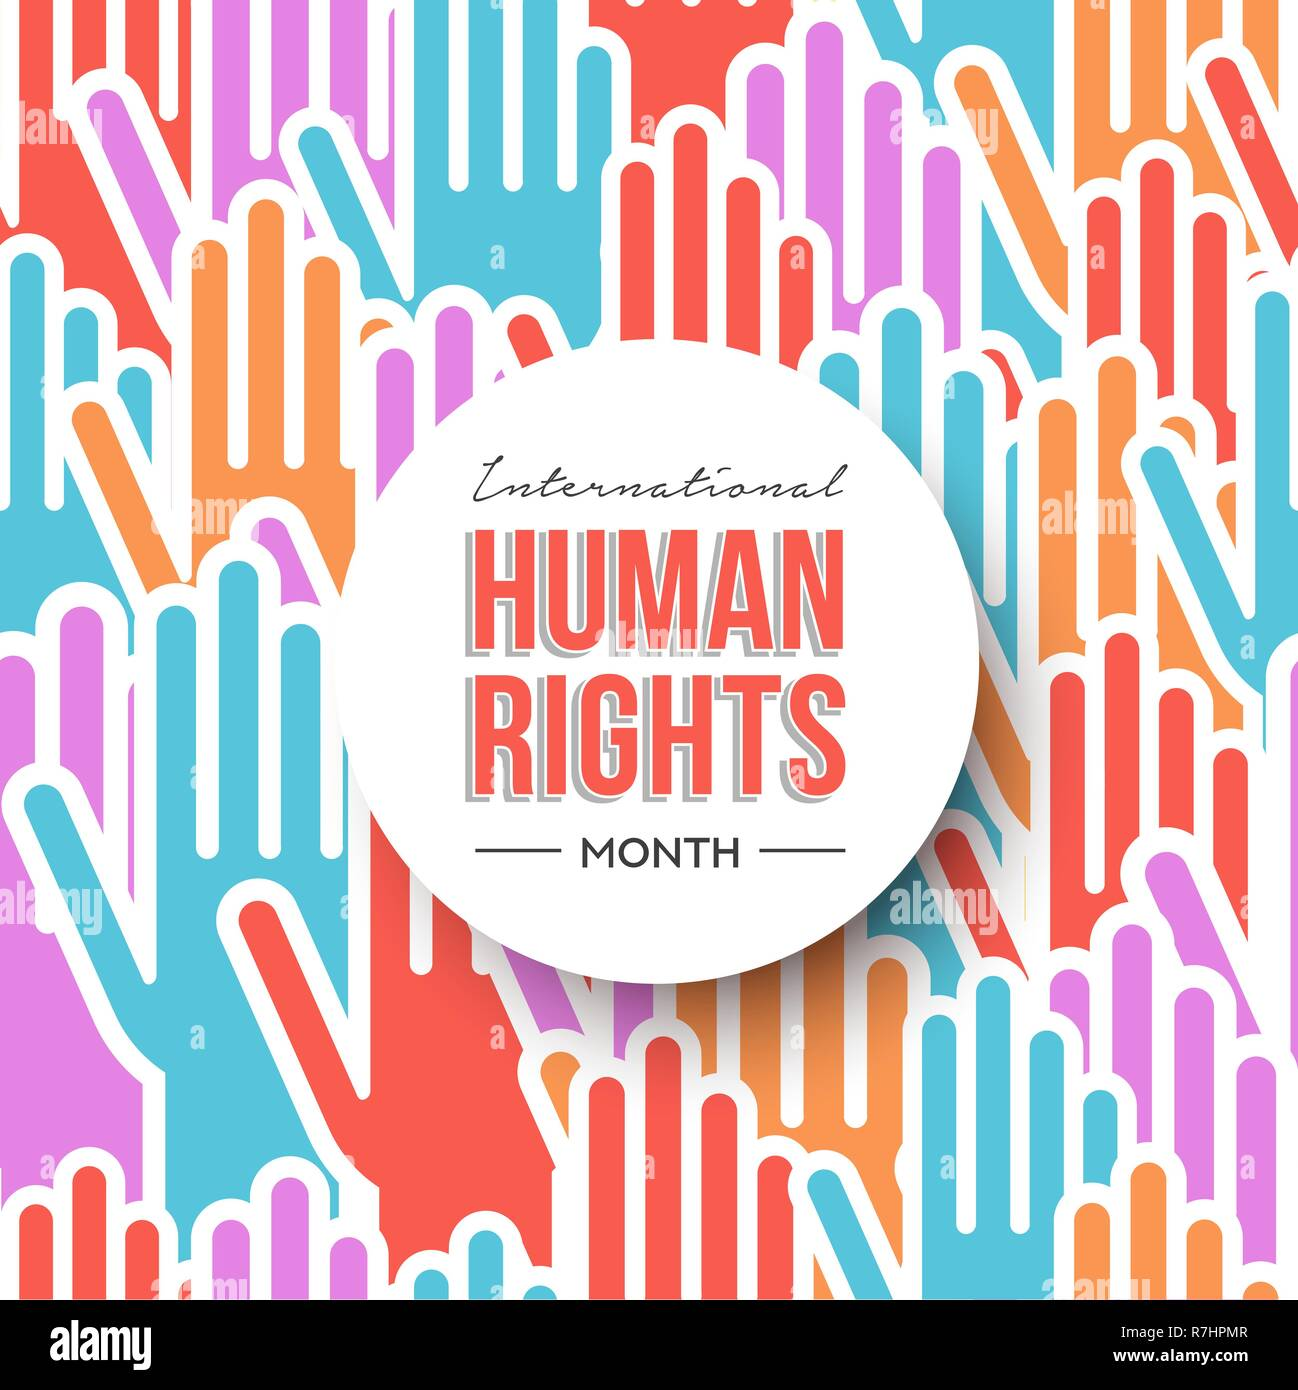 c5024cd17e21 International Human Rights month illustration for global equality and peace  with colorful people hands